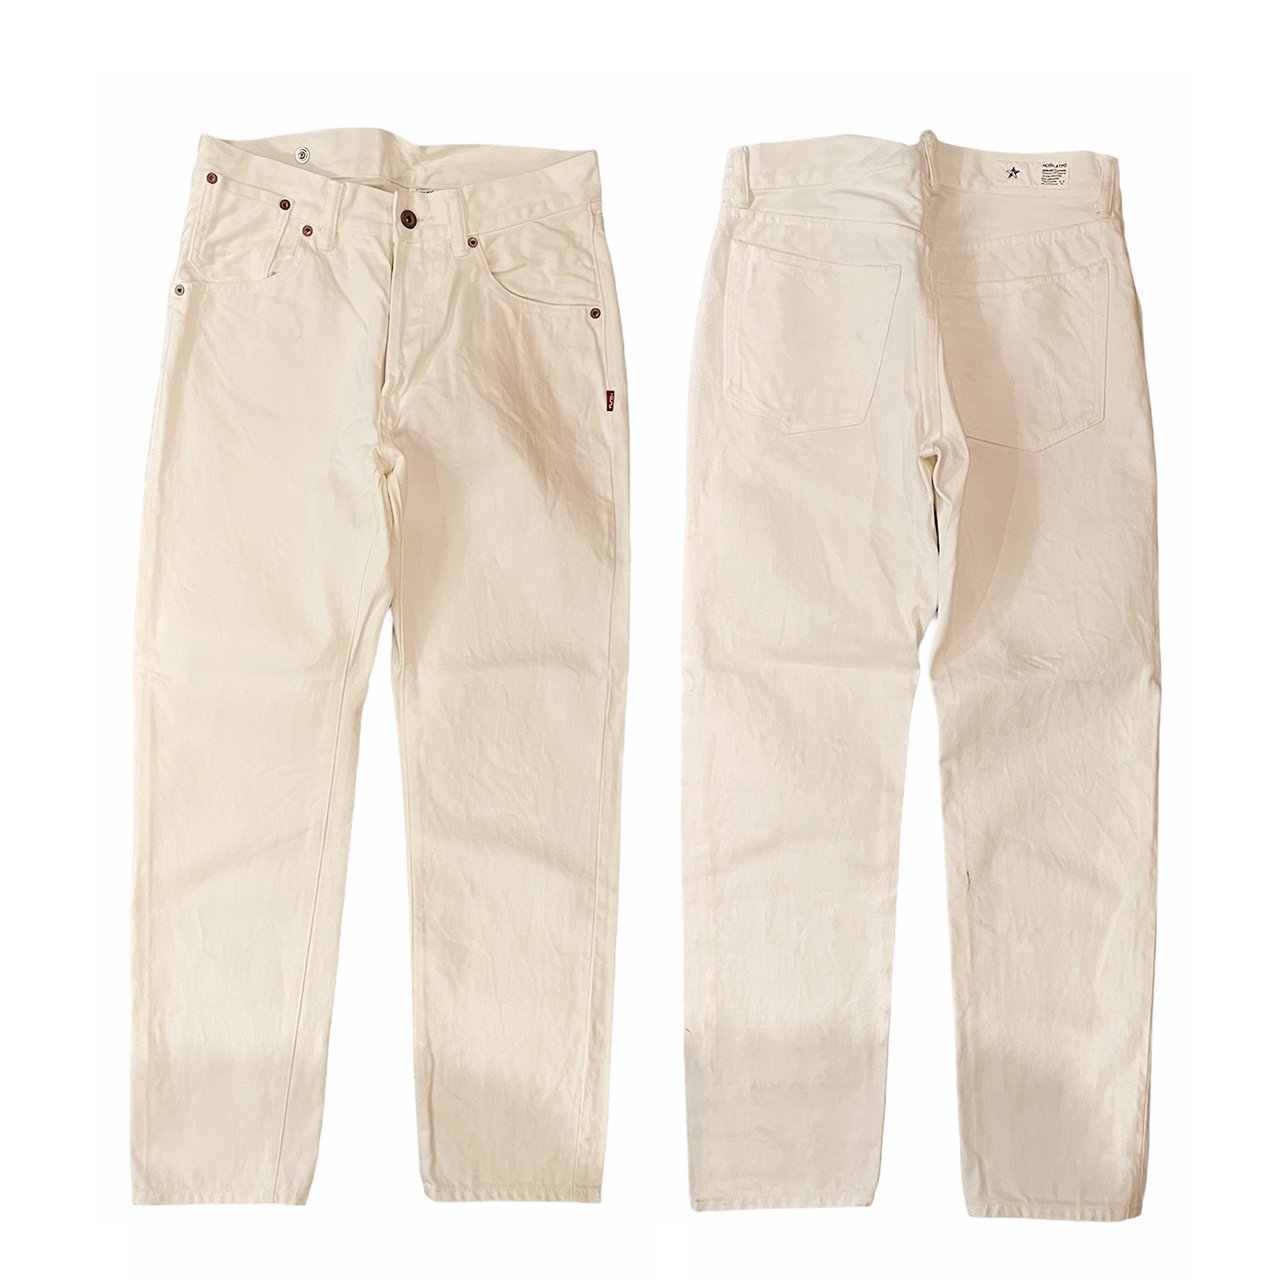 <img class='new_mark_img1' src='//img.shop-pro.jp/img/new/icons7.gif' style='border:none;display:inline;margin:0px;padding:0px;width:auto;' />HOSU TYPE 185 REGULAR TAPERED WHITE DENIM(ONE WASH)